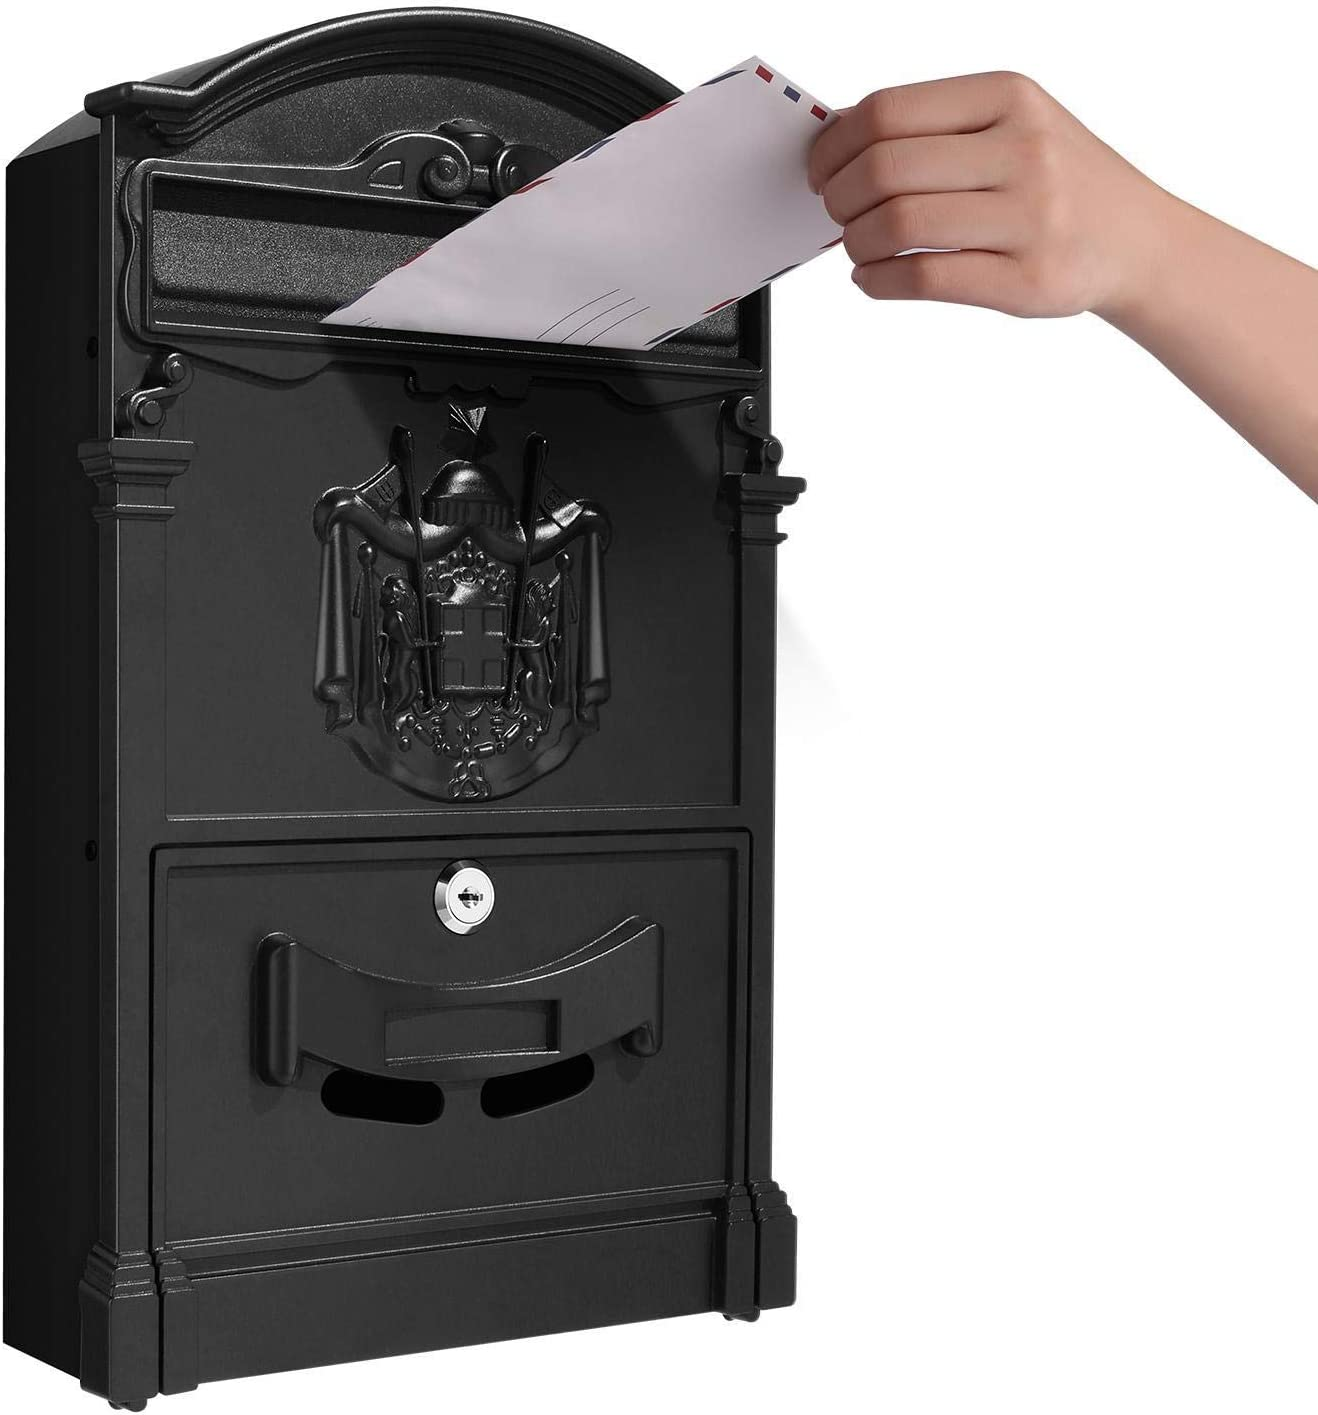 Vintage Mailbox for Post Mailbox That Locks  Retro Style Wall-Mount Mailboxes on House   Mailbox Green, Mailbox Black,Mailbox Bronze on Office